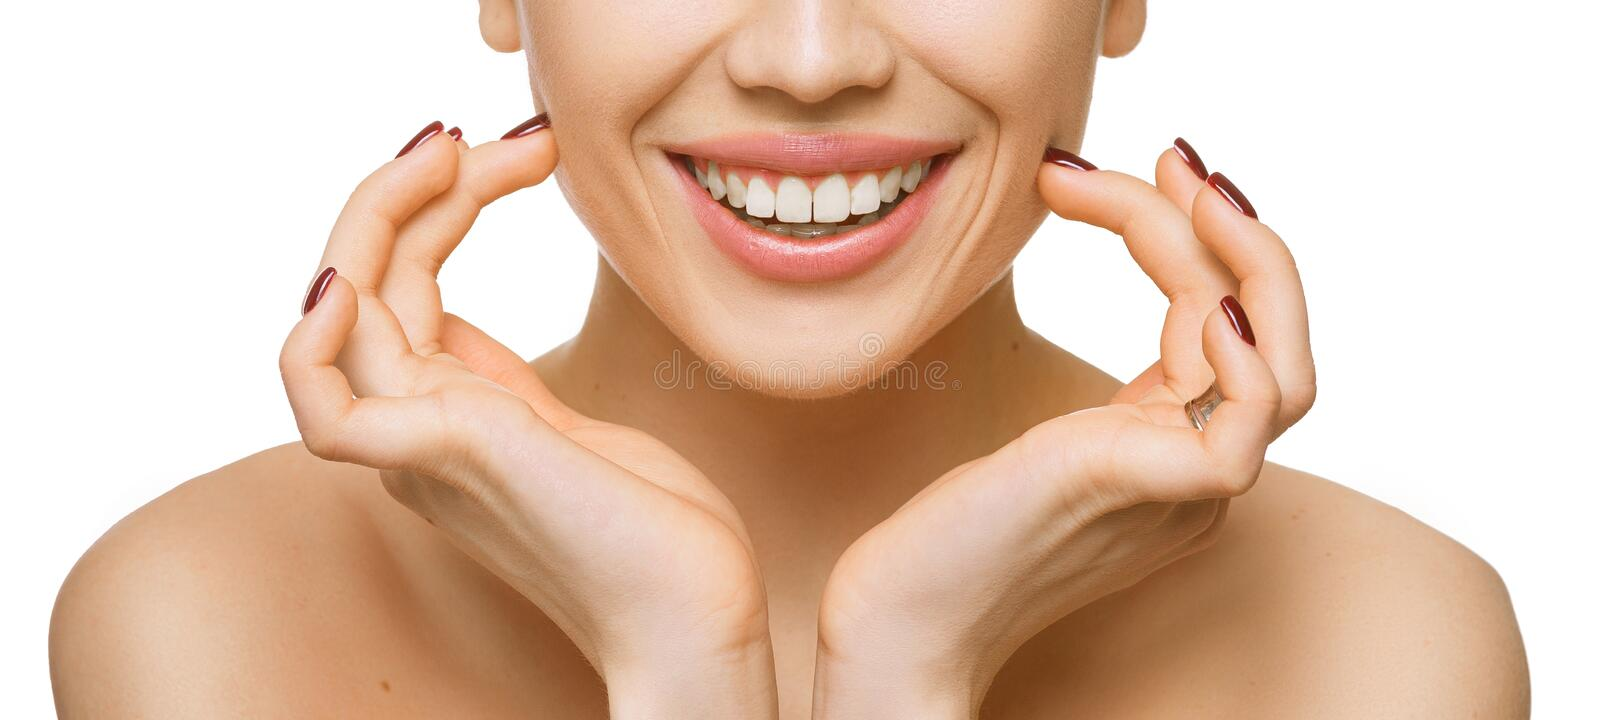 Healthy teeth and smile of a beautiful young woman isolated on white background stock photos